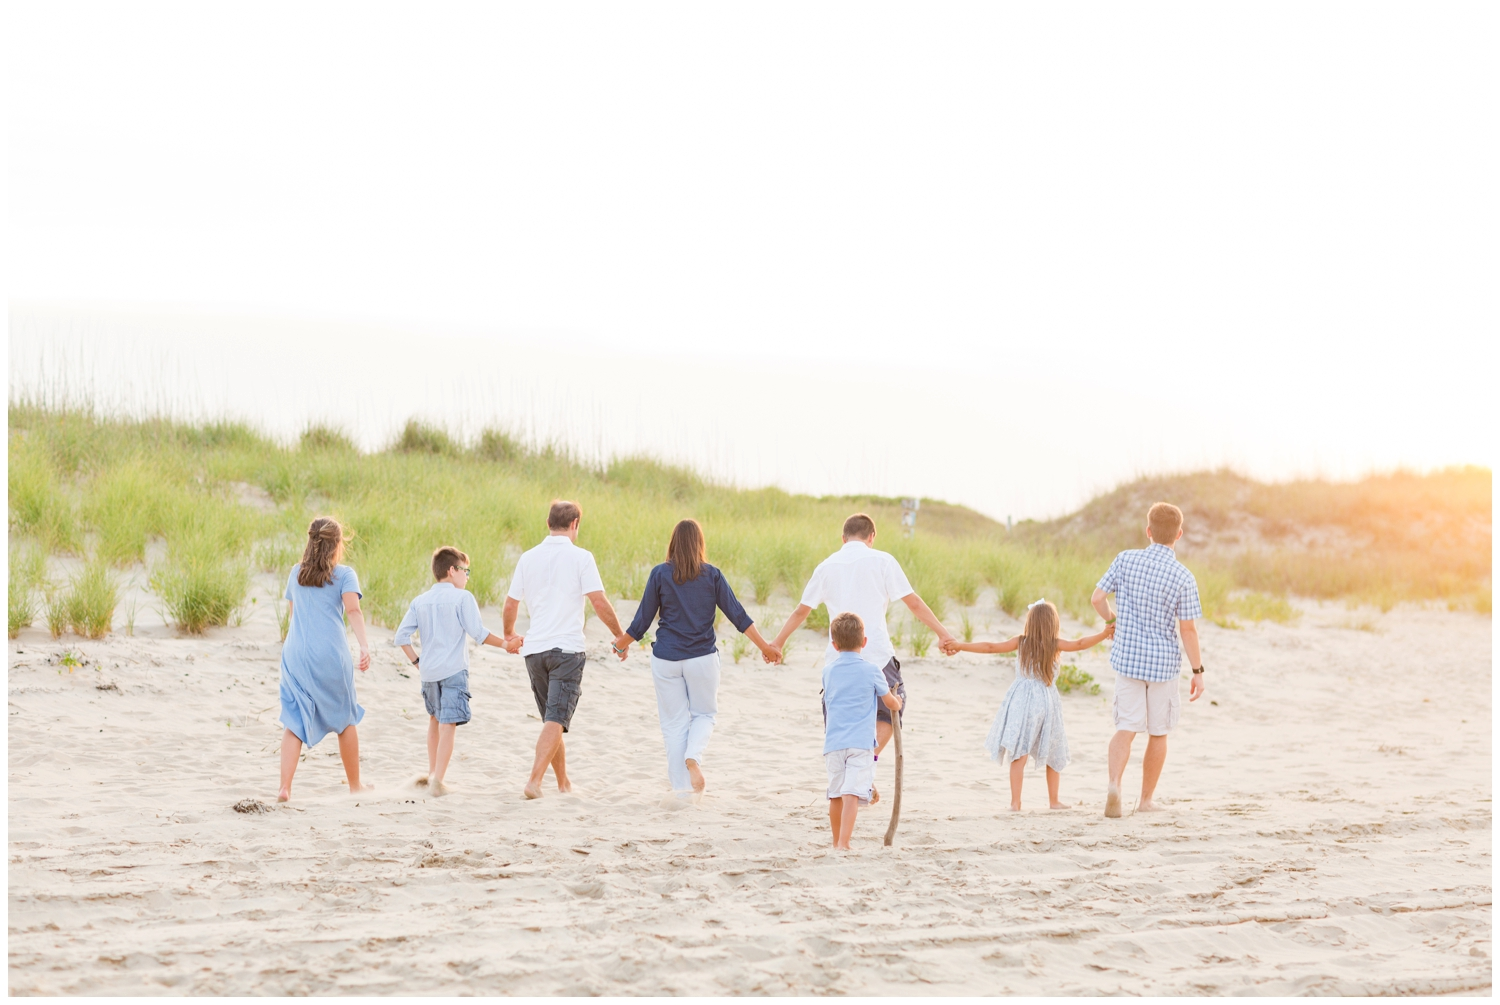 elovephotos virginia beach sandbridge family photographer_0900.jpg